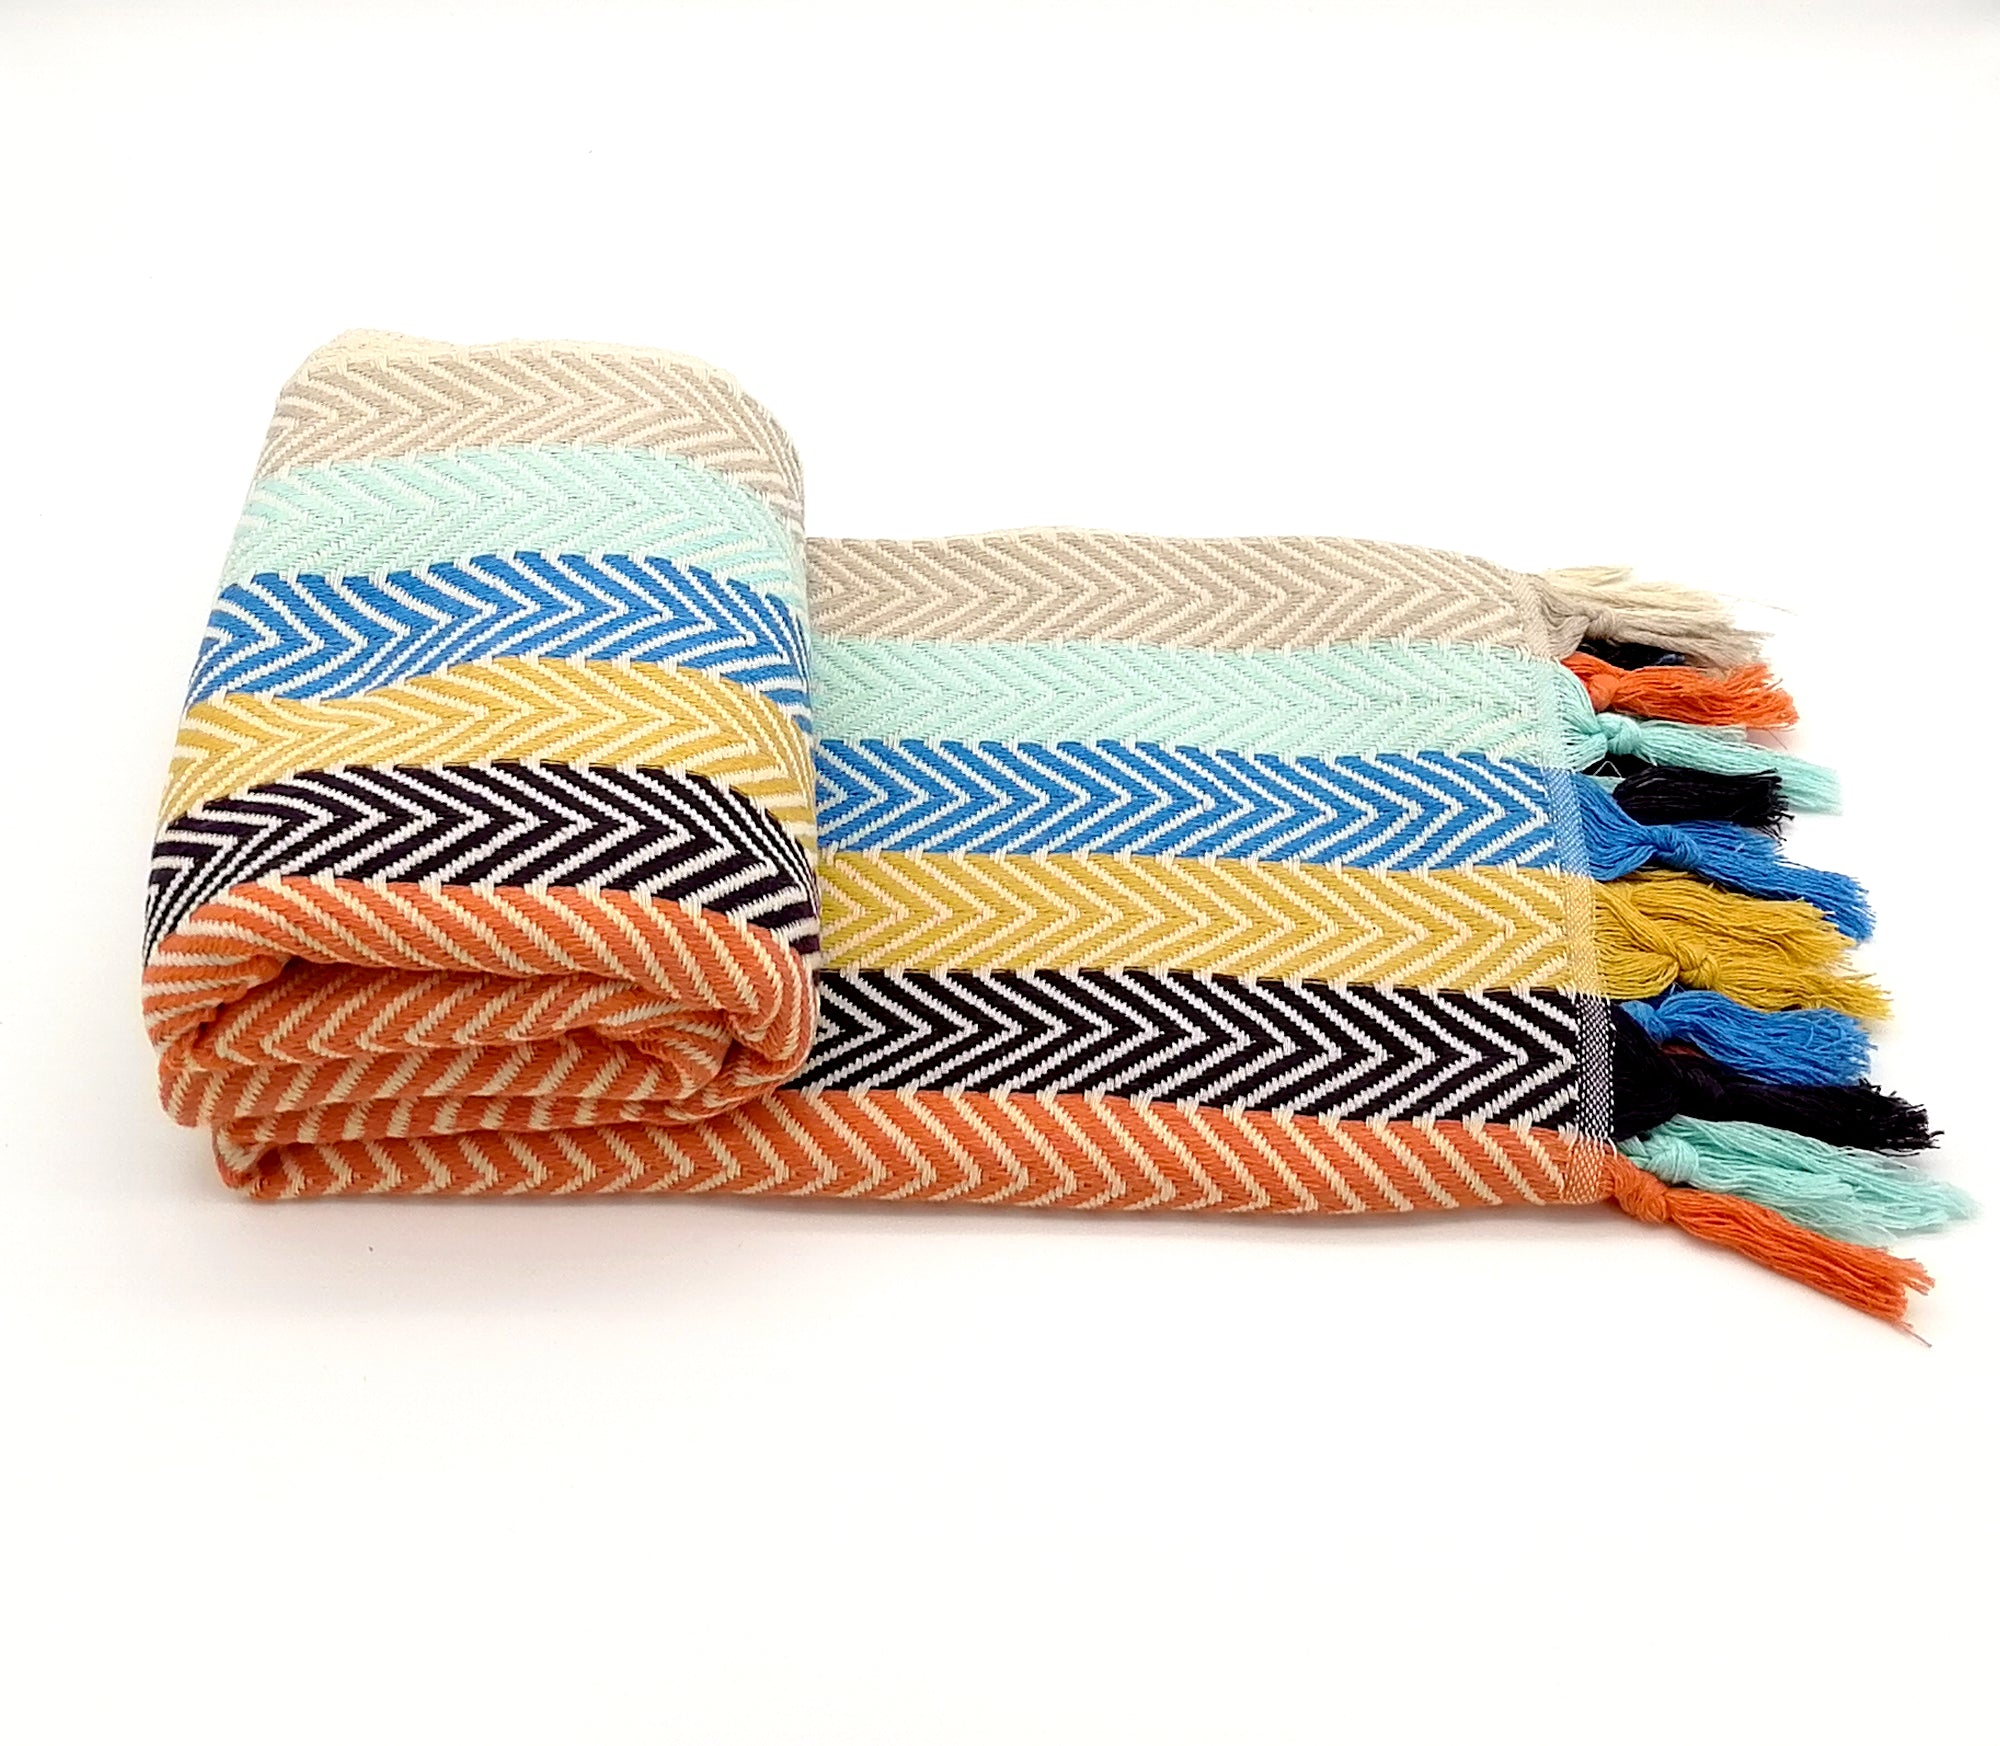 Turkish peshtemal towel, arrow pattern, Lightweight, highly absorbent, quick-drying feature, adorned with fringes on both ends.